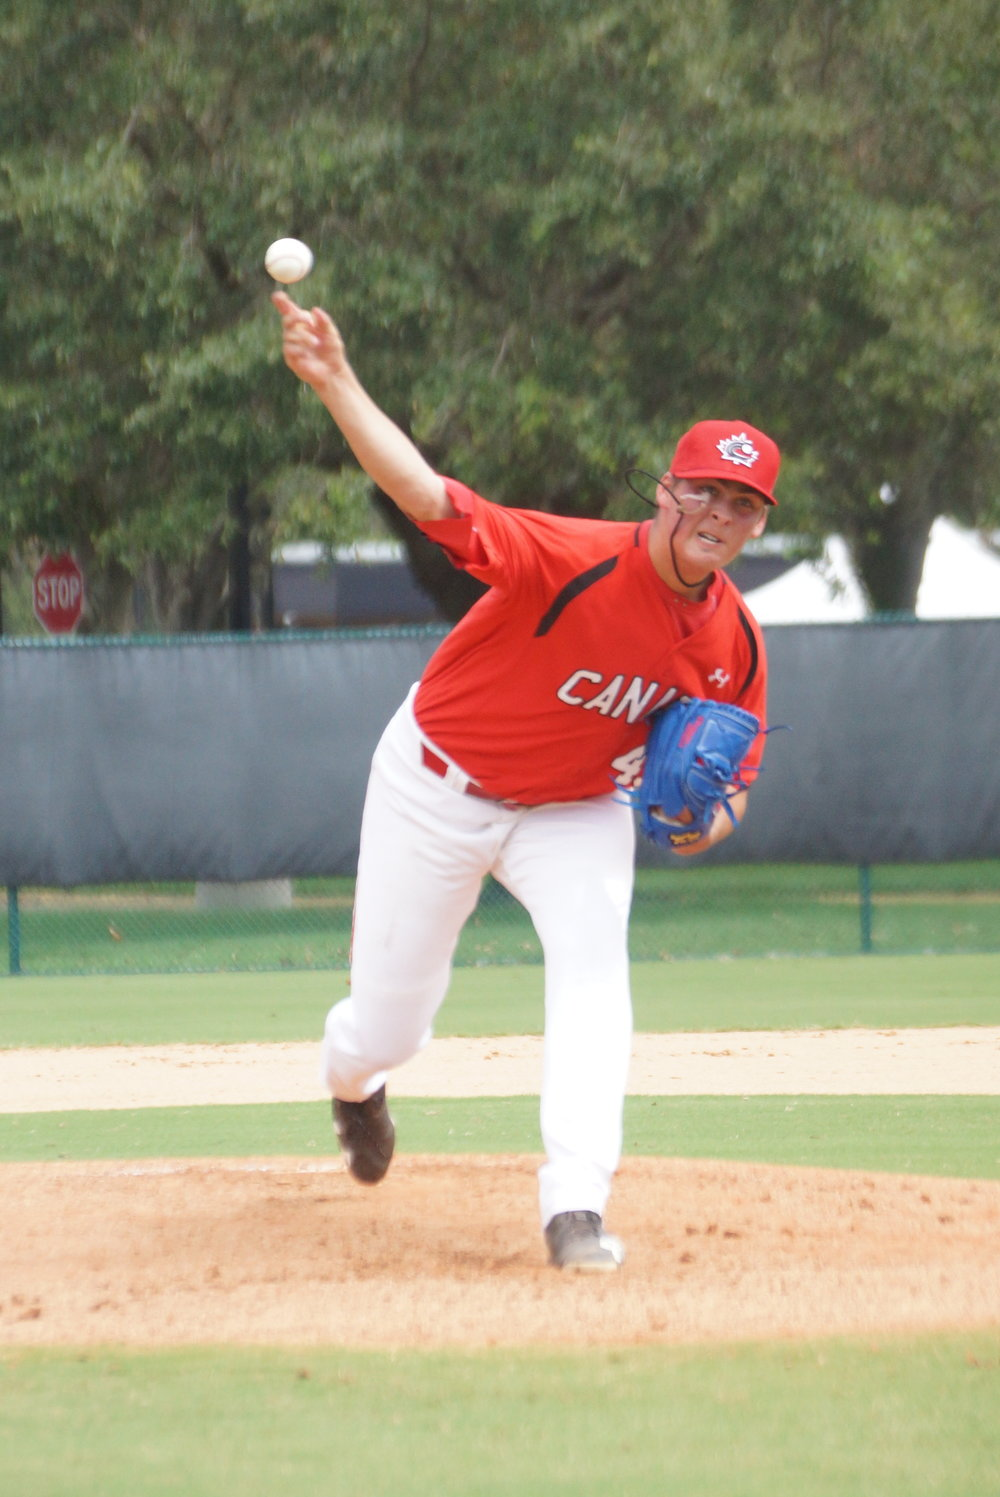 Ontario Terriers right-hander Ben Abram (Georgetown, Ont.) pitched three scoreless innings for the Canadian Junior National Team on Monday. Photo Credit: Eddie Michels